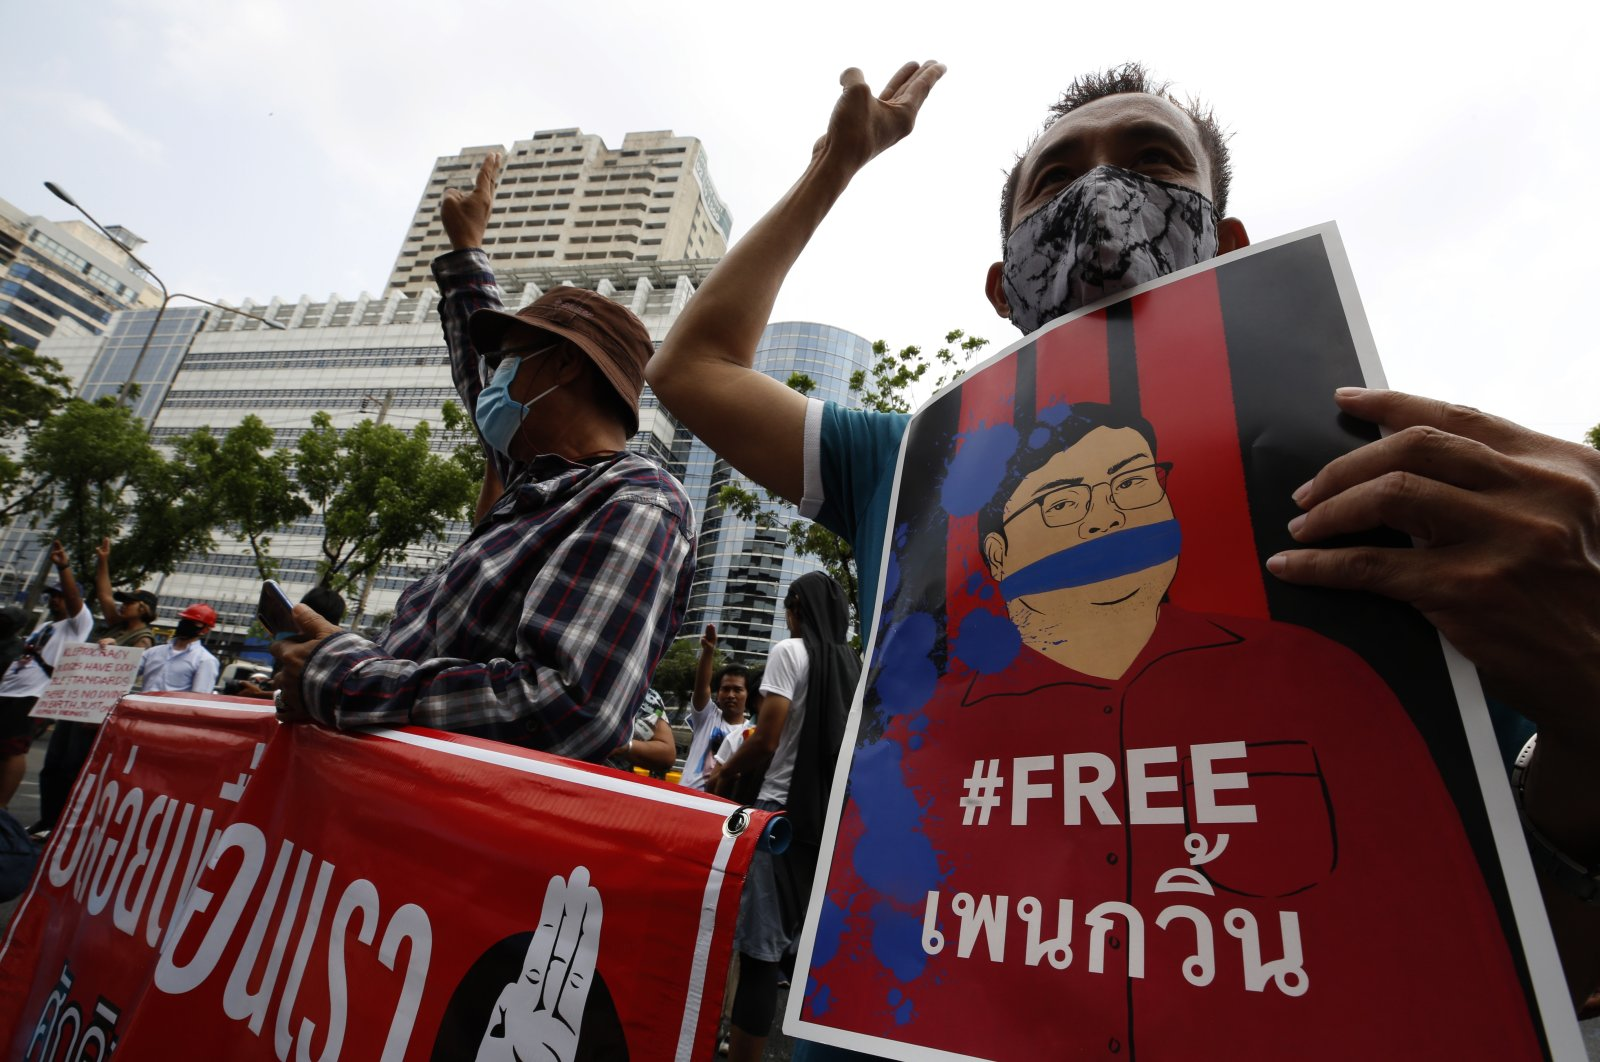 An anti-government protester holds a placard calling for the release of a jailed protest leader Parit Chiwarak as people gather in support of the protest leaders outside the criminal court in Bangkok, Thailand, March 8, 2021. (EPA Photo)